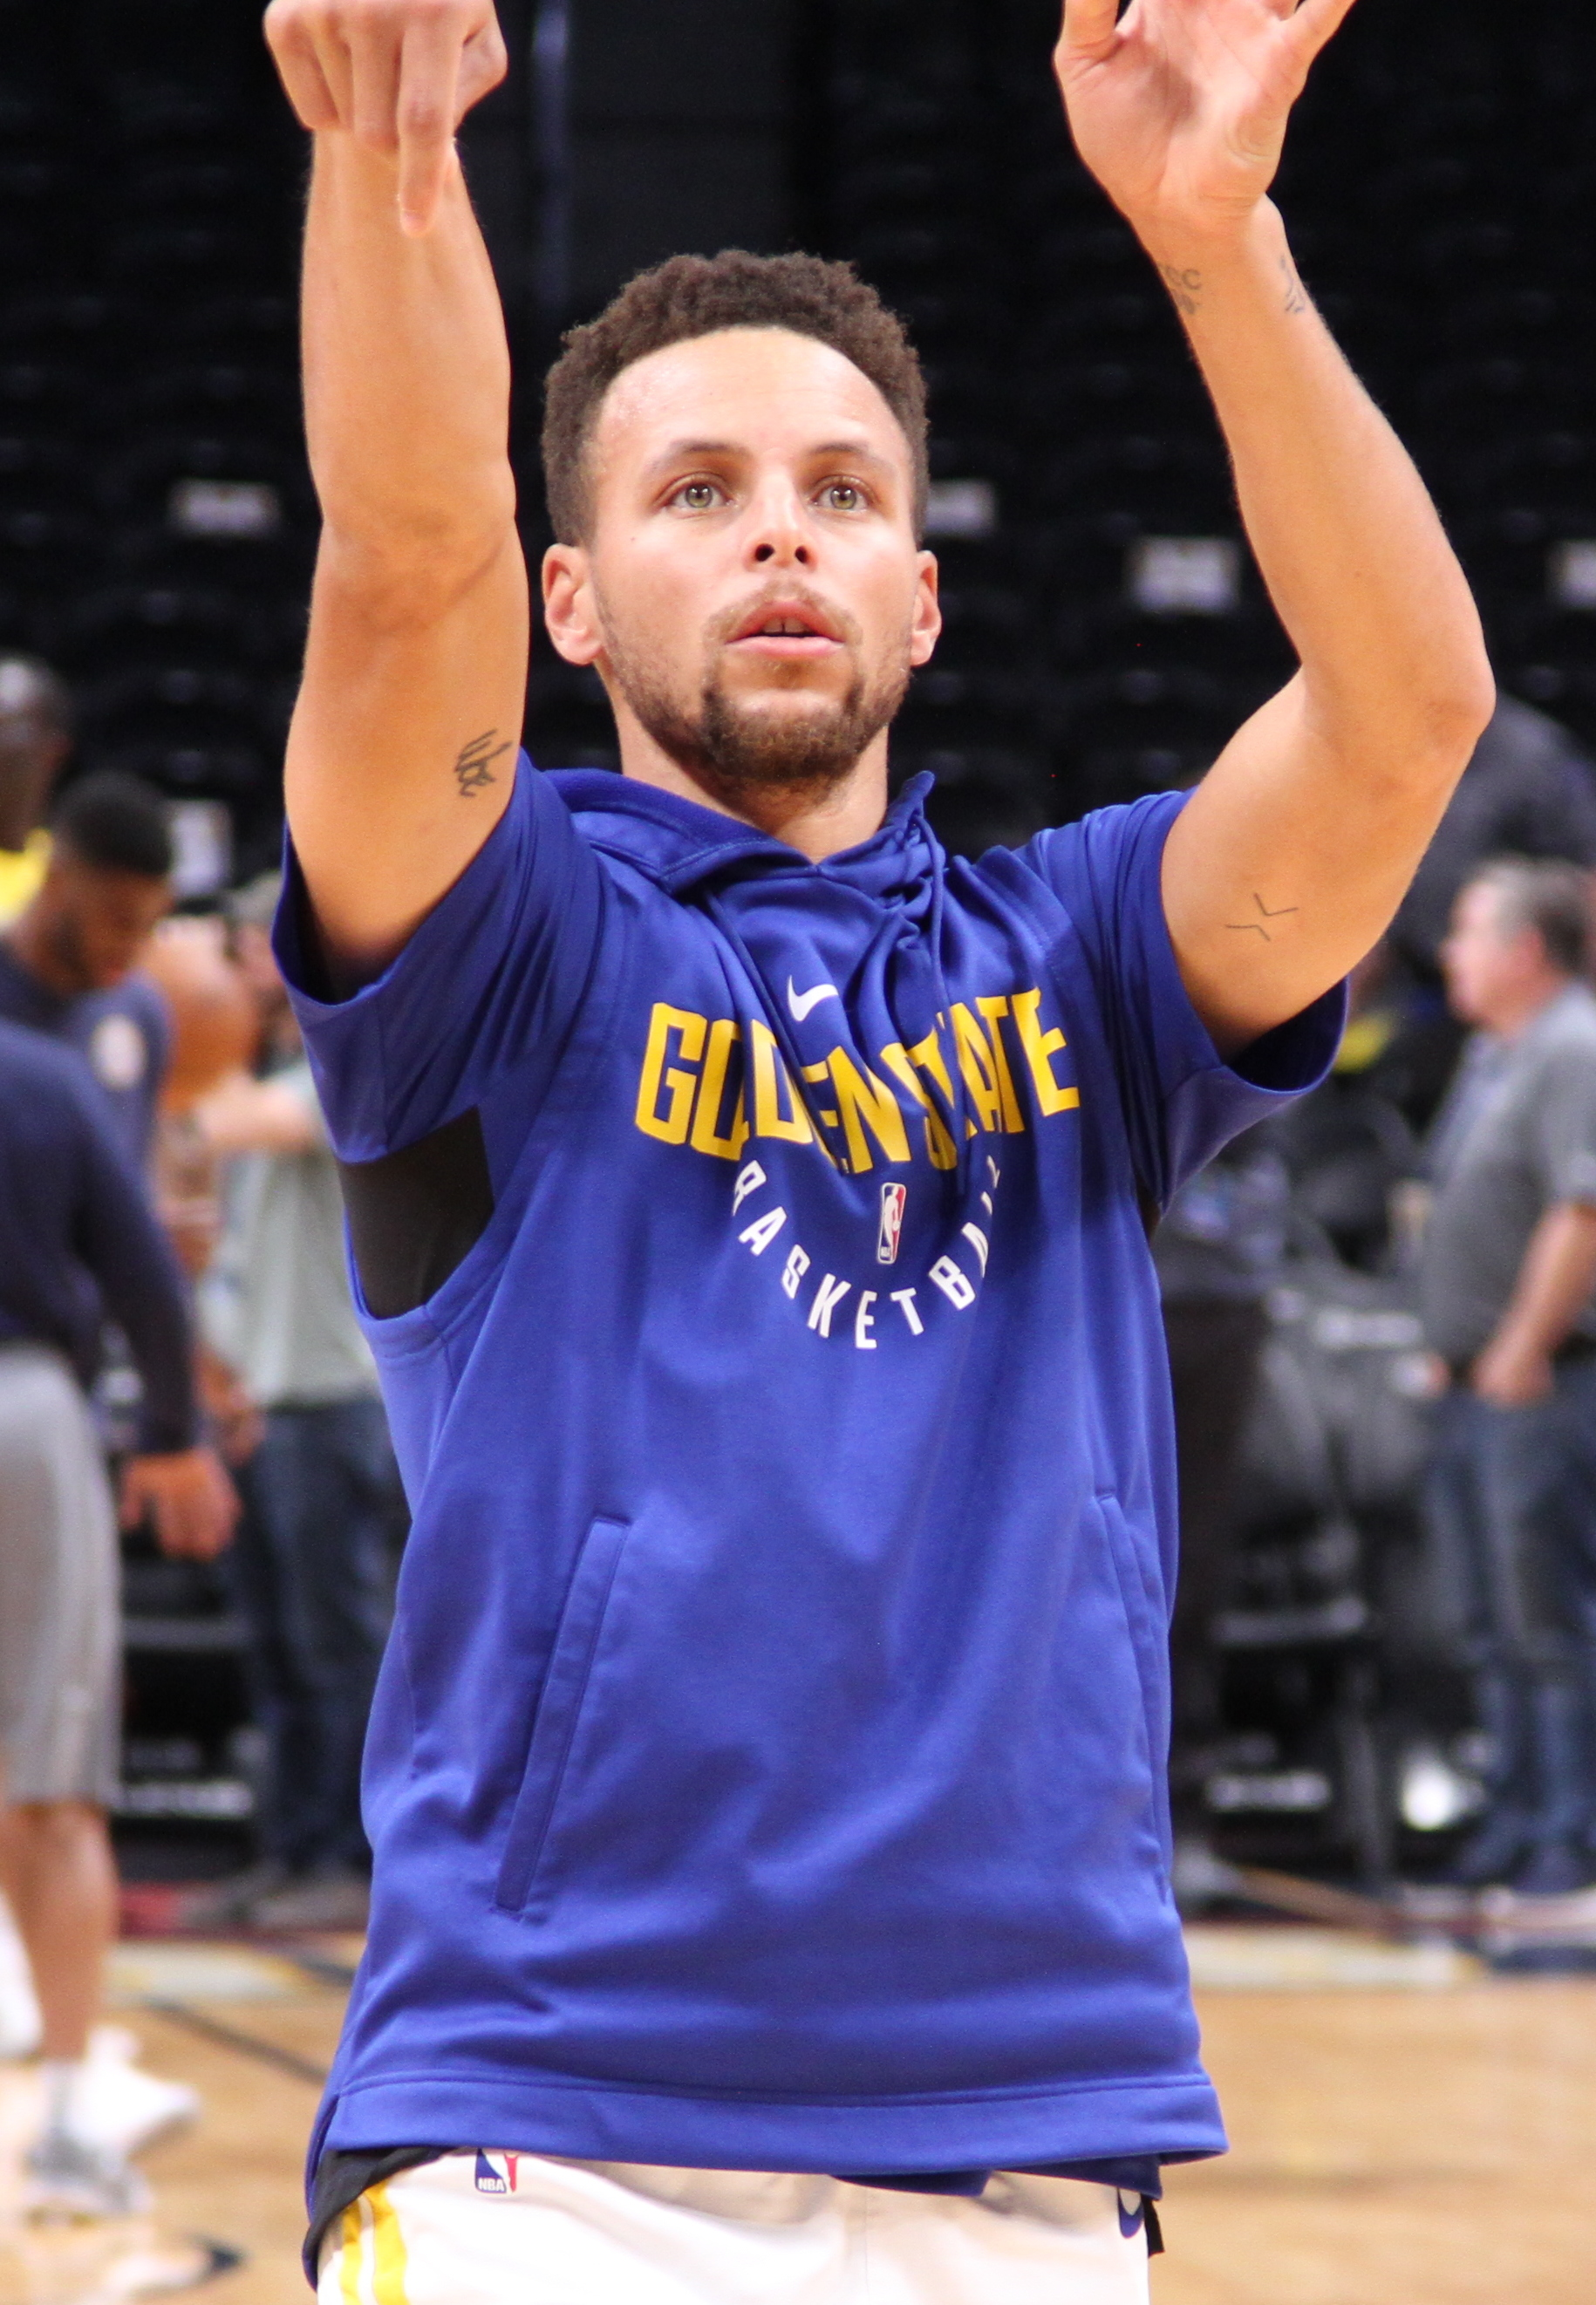 wholesale dealer 7db71 d4947 Stephen Curry - Wikipedia